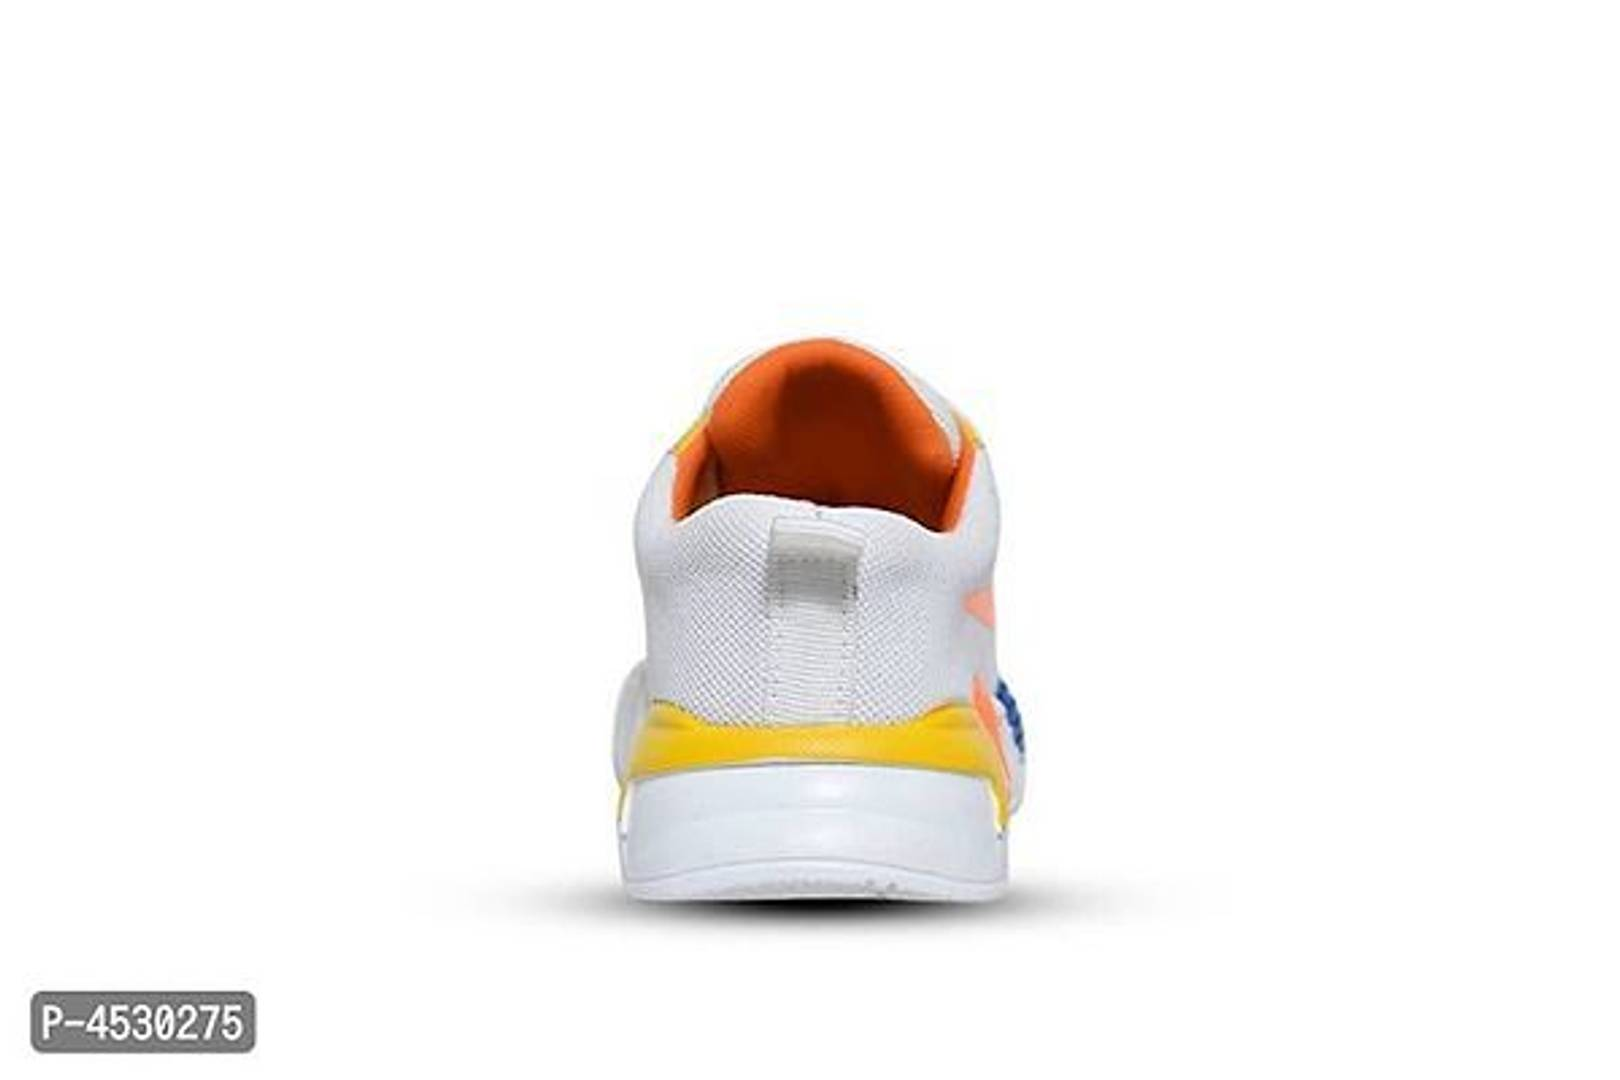 Men's Stylish and Trendy Yellow Self Design Mesh Casual Sneakers